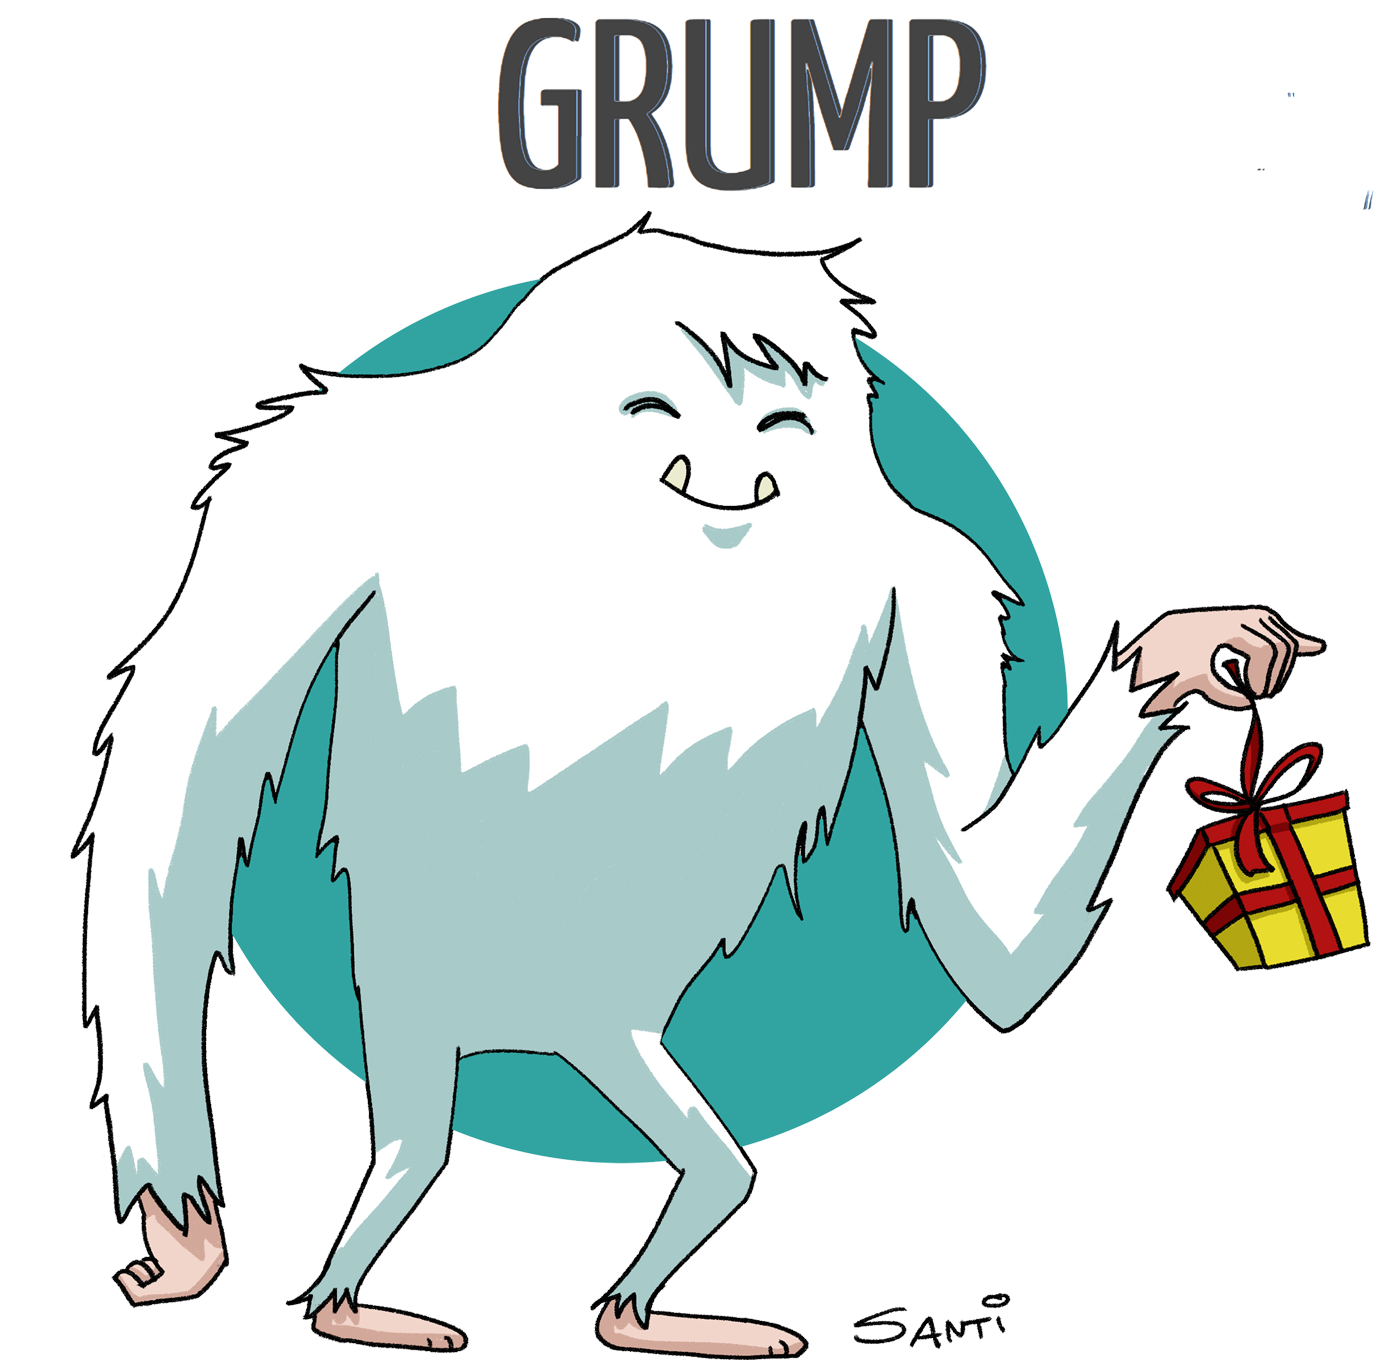 A digital illustration of a yeti holding a gift